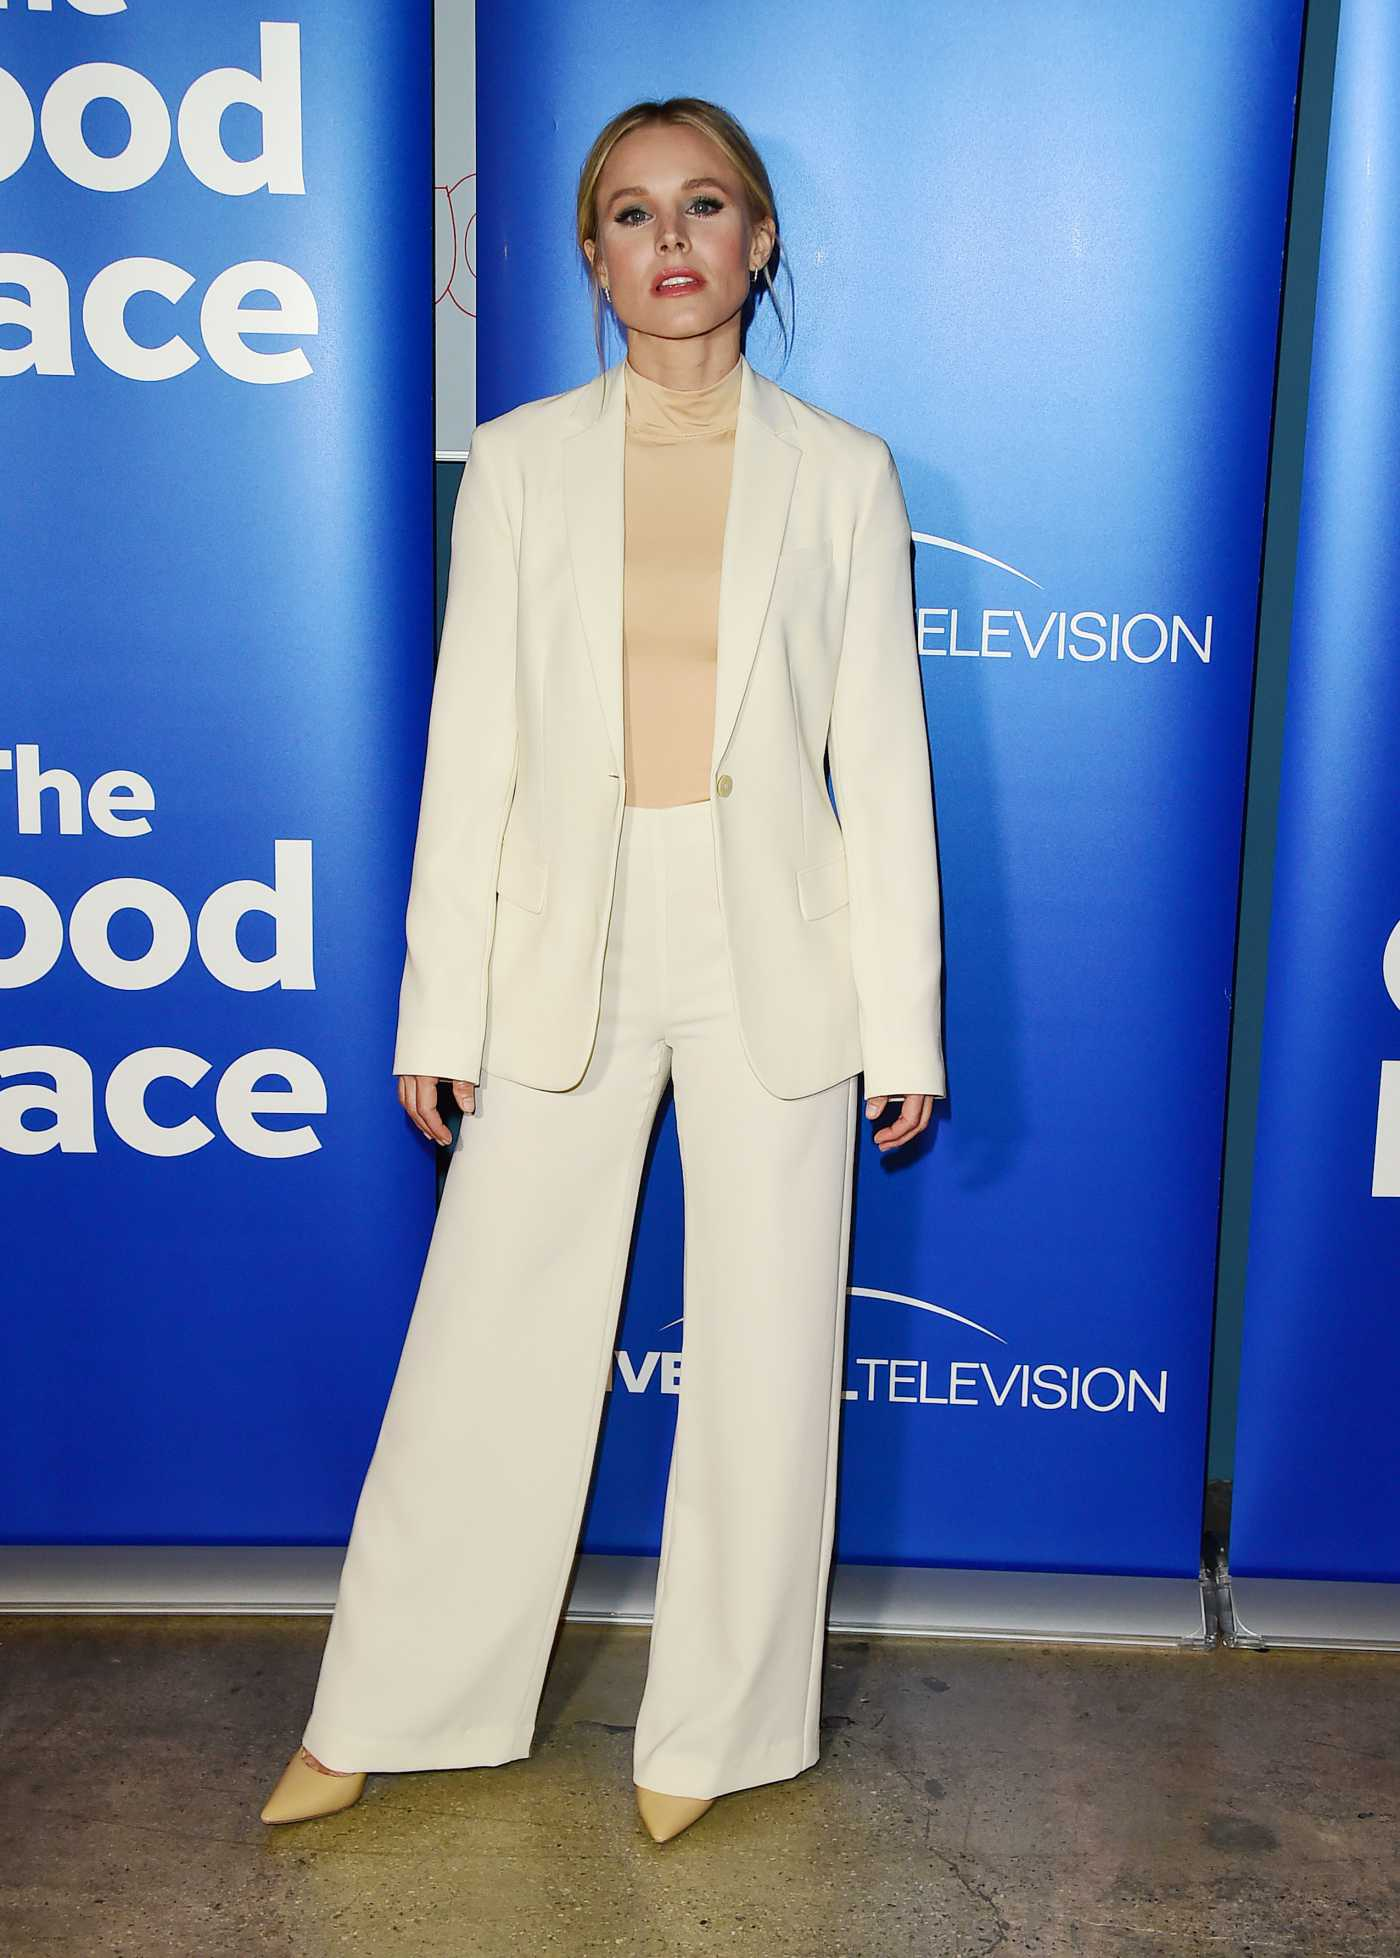 Kristen Bell Attends The Good Place FYC Event in Los Angeles 06/17/2019